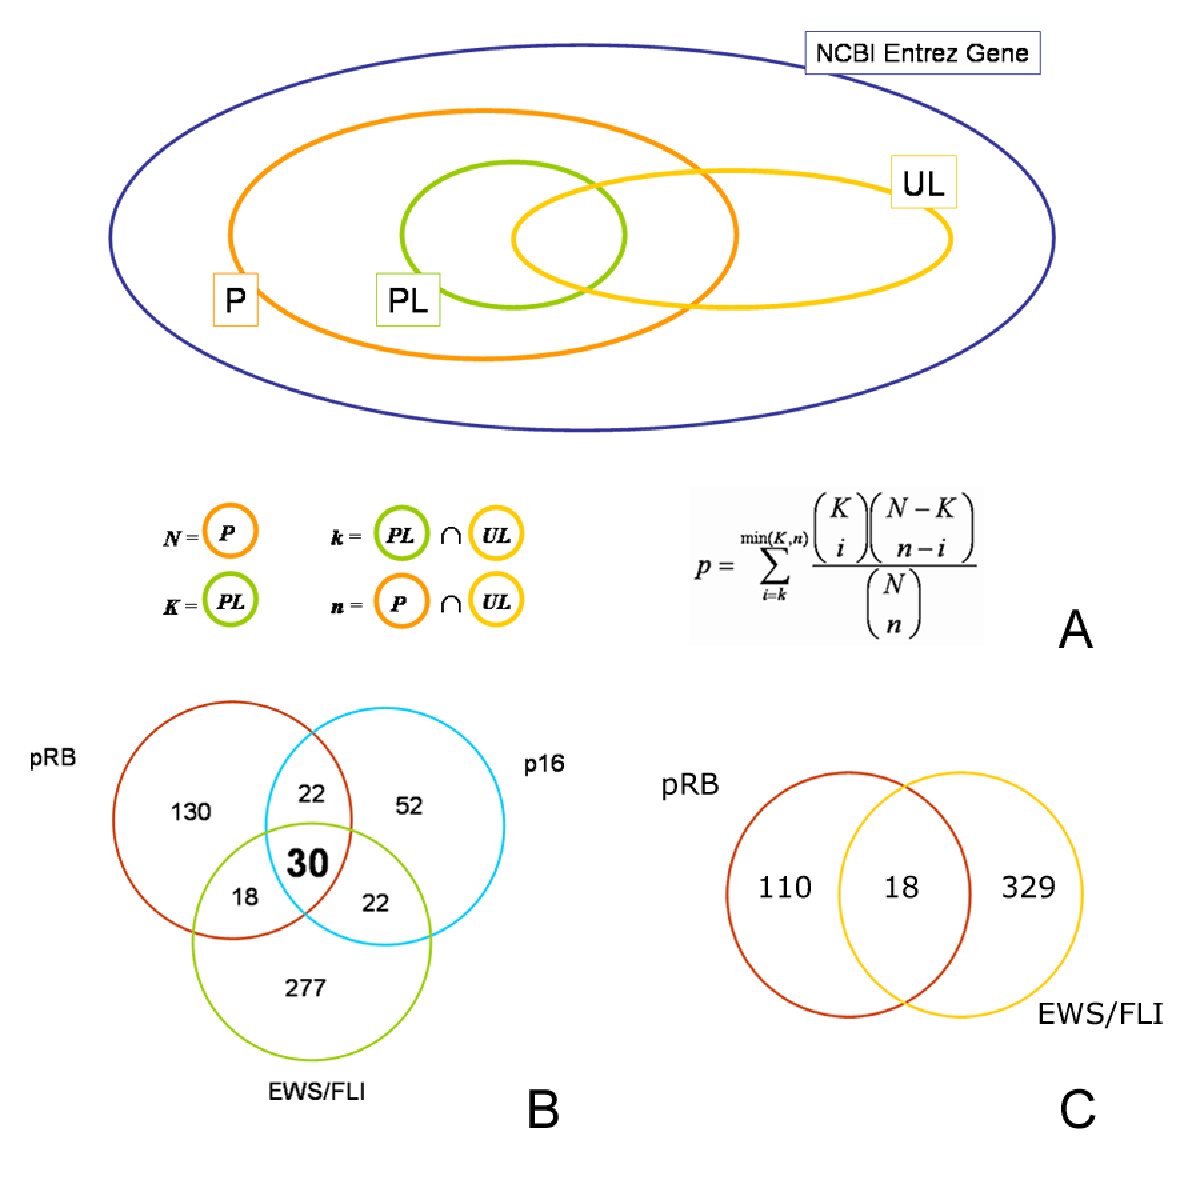 https://static-content.springer.com/image/art%3A10.1186%2F1471-2105-6-S4-S14/MediaObjects/12859_2005_Article_729_Fig1_HTML.jpg